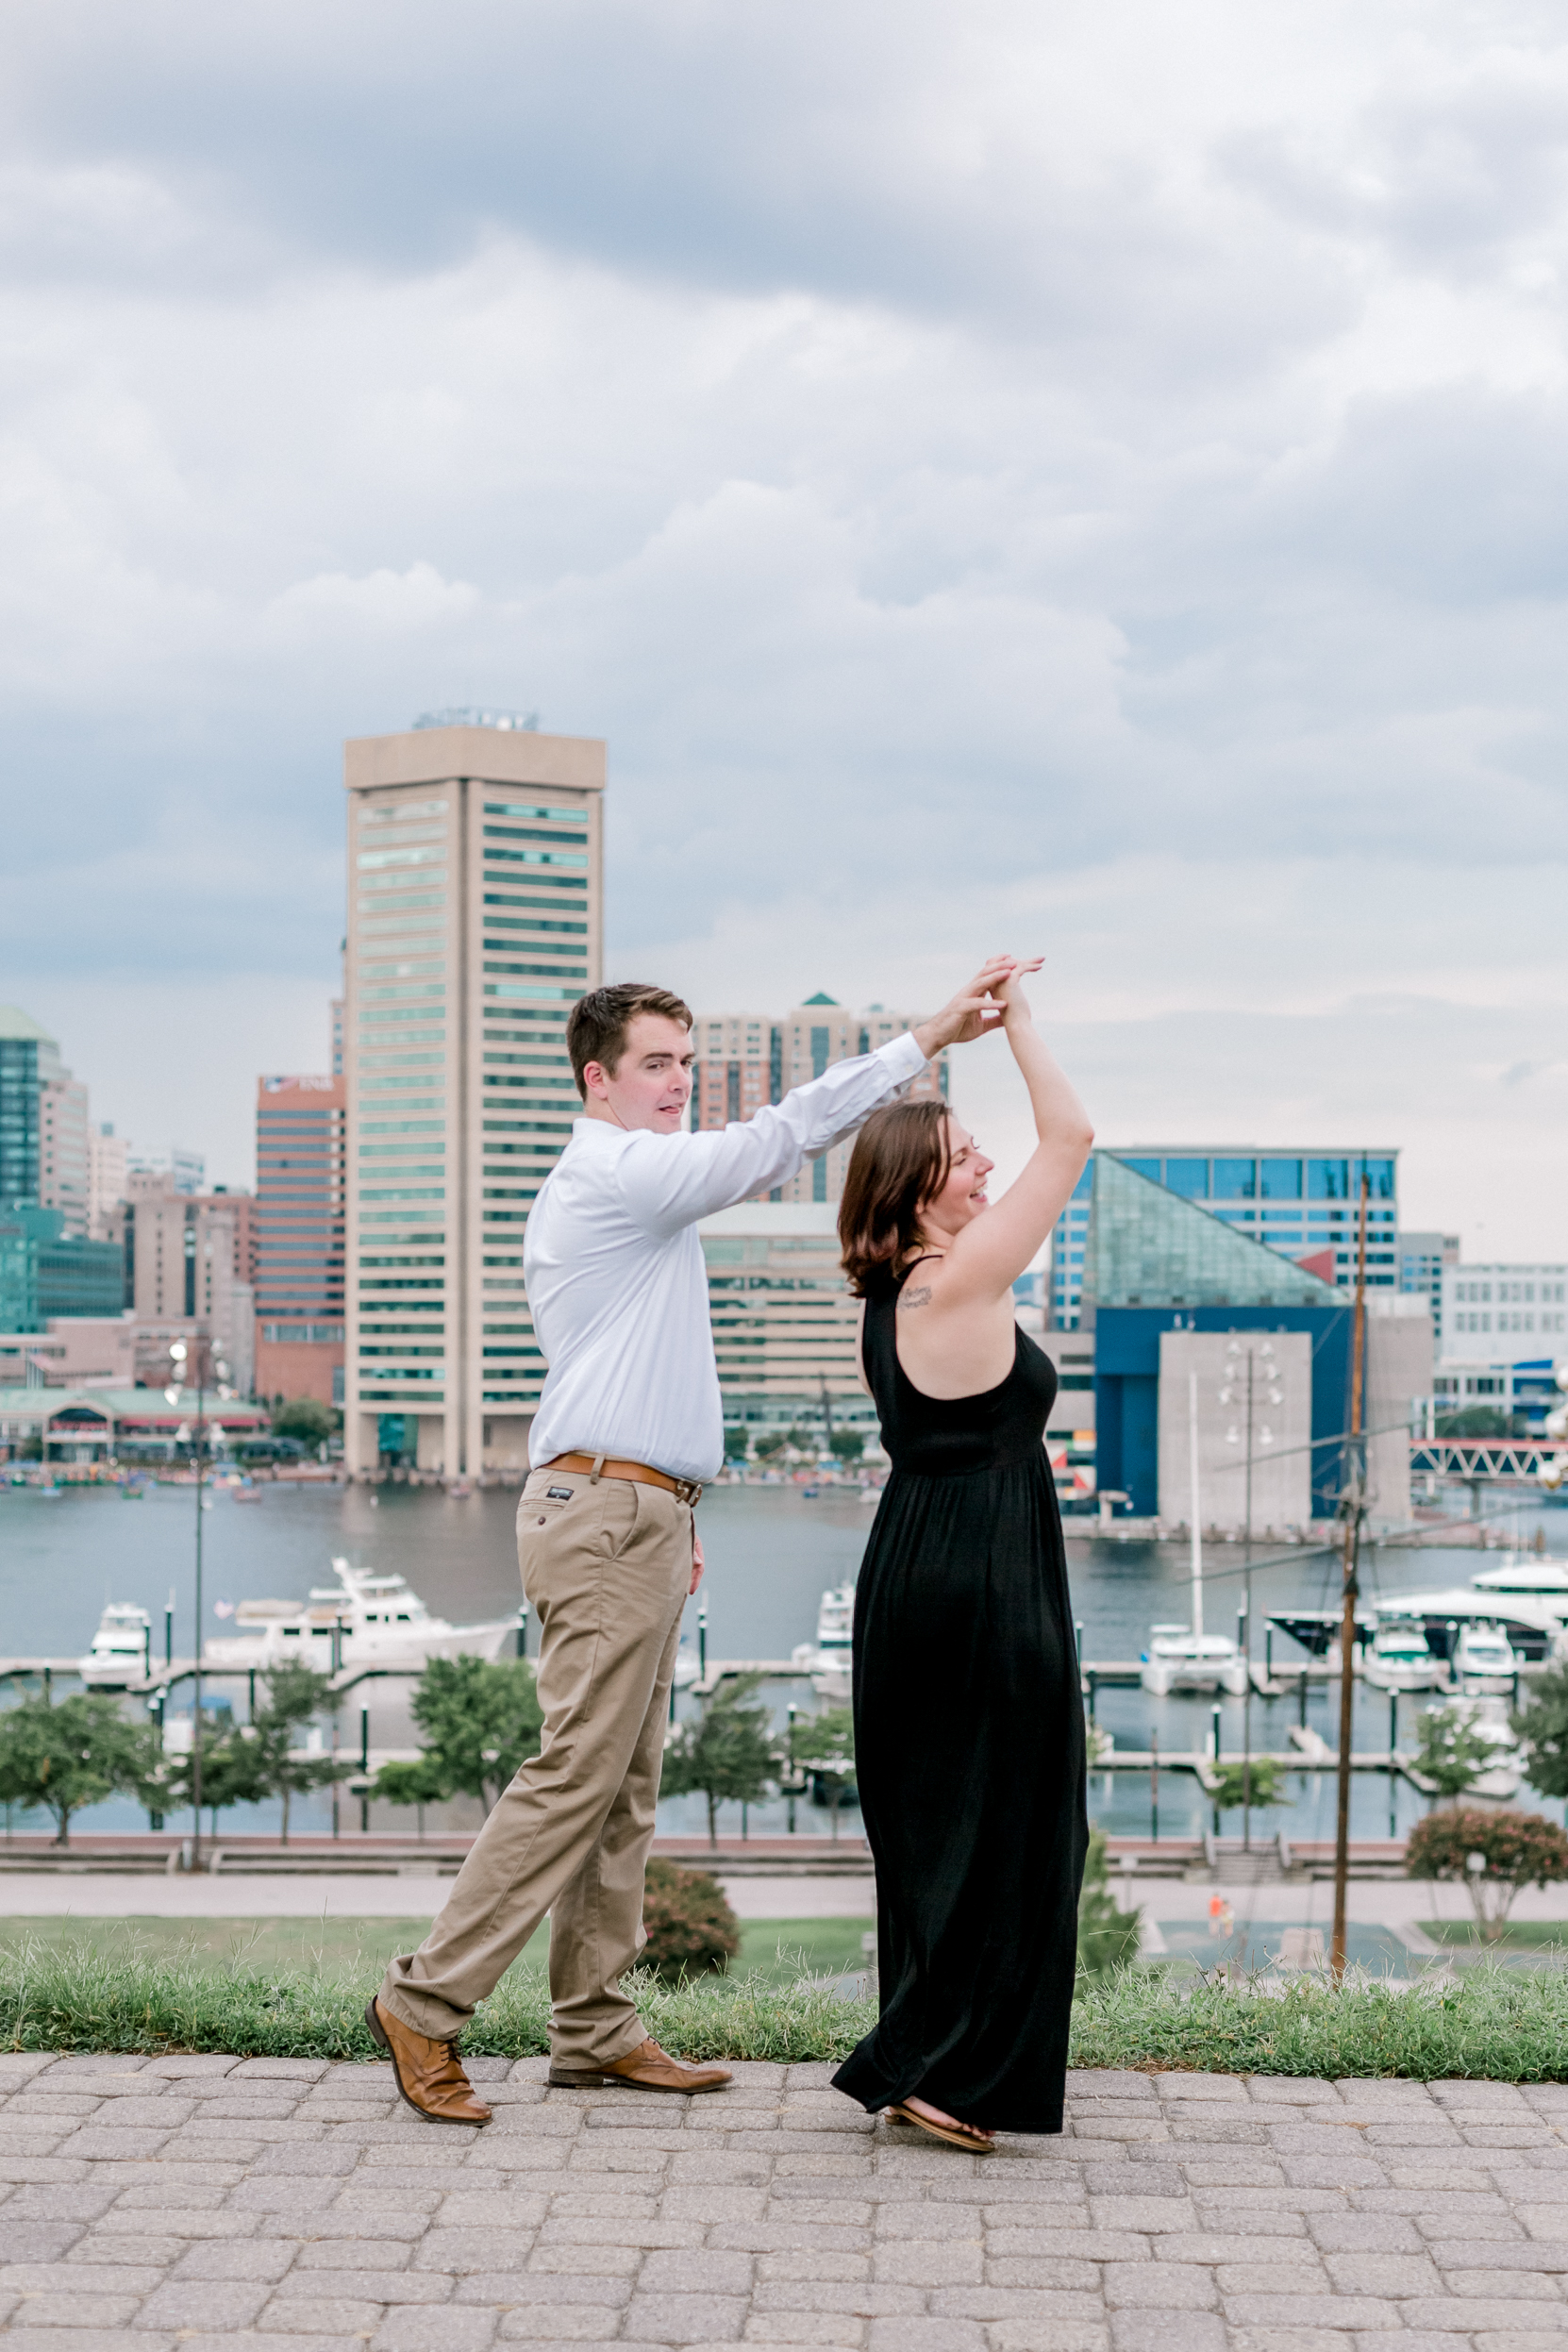 Baltimore Federal Hill Park Stormy Engagement Session Lytle Photo Co (84 of 92).jpg